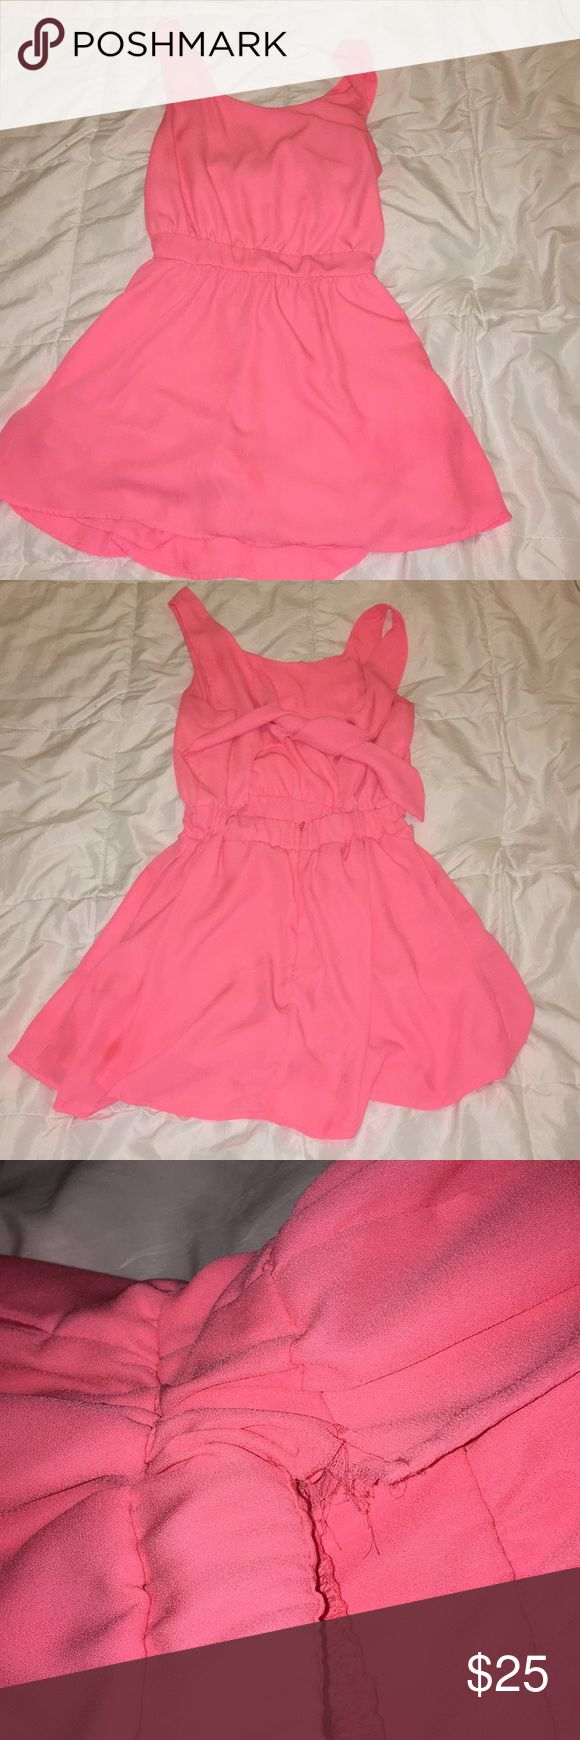 Neon pink dress Neon pink dress, with shorts under. Size small, has small rip in the back Macy's Dresses Mini